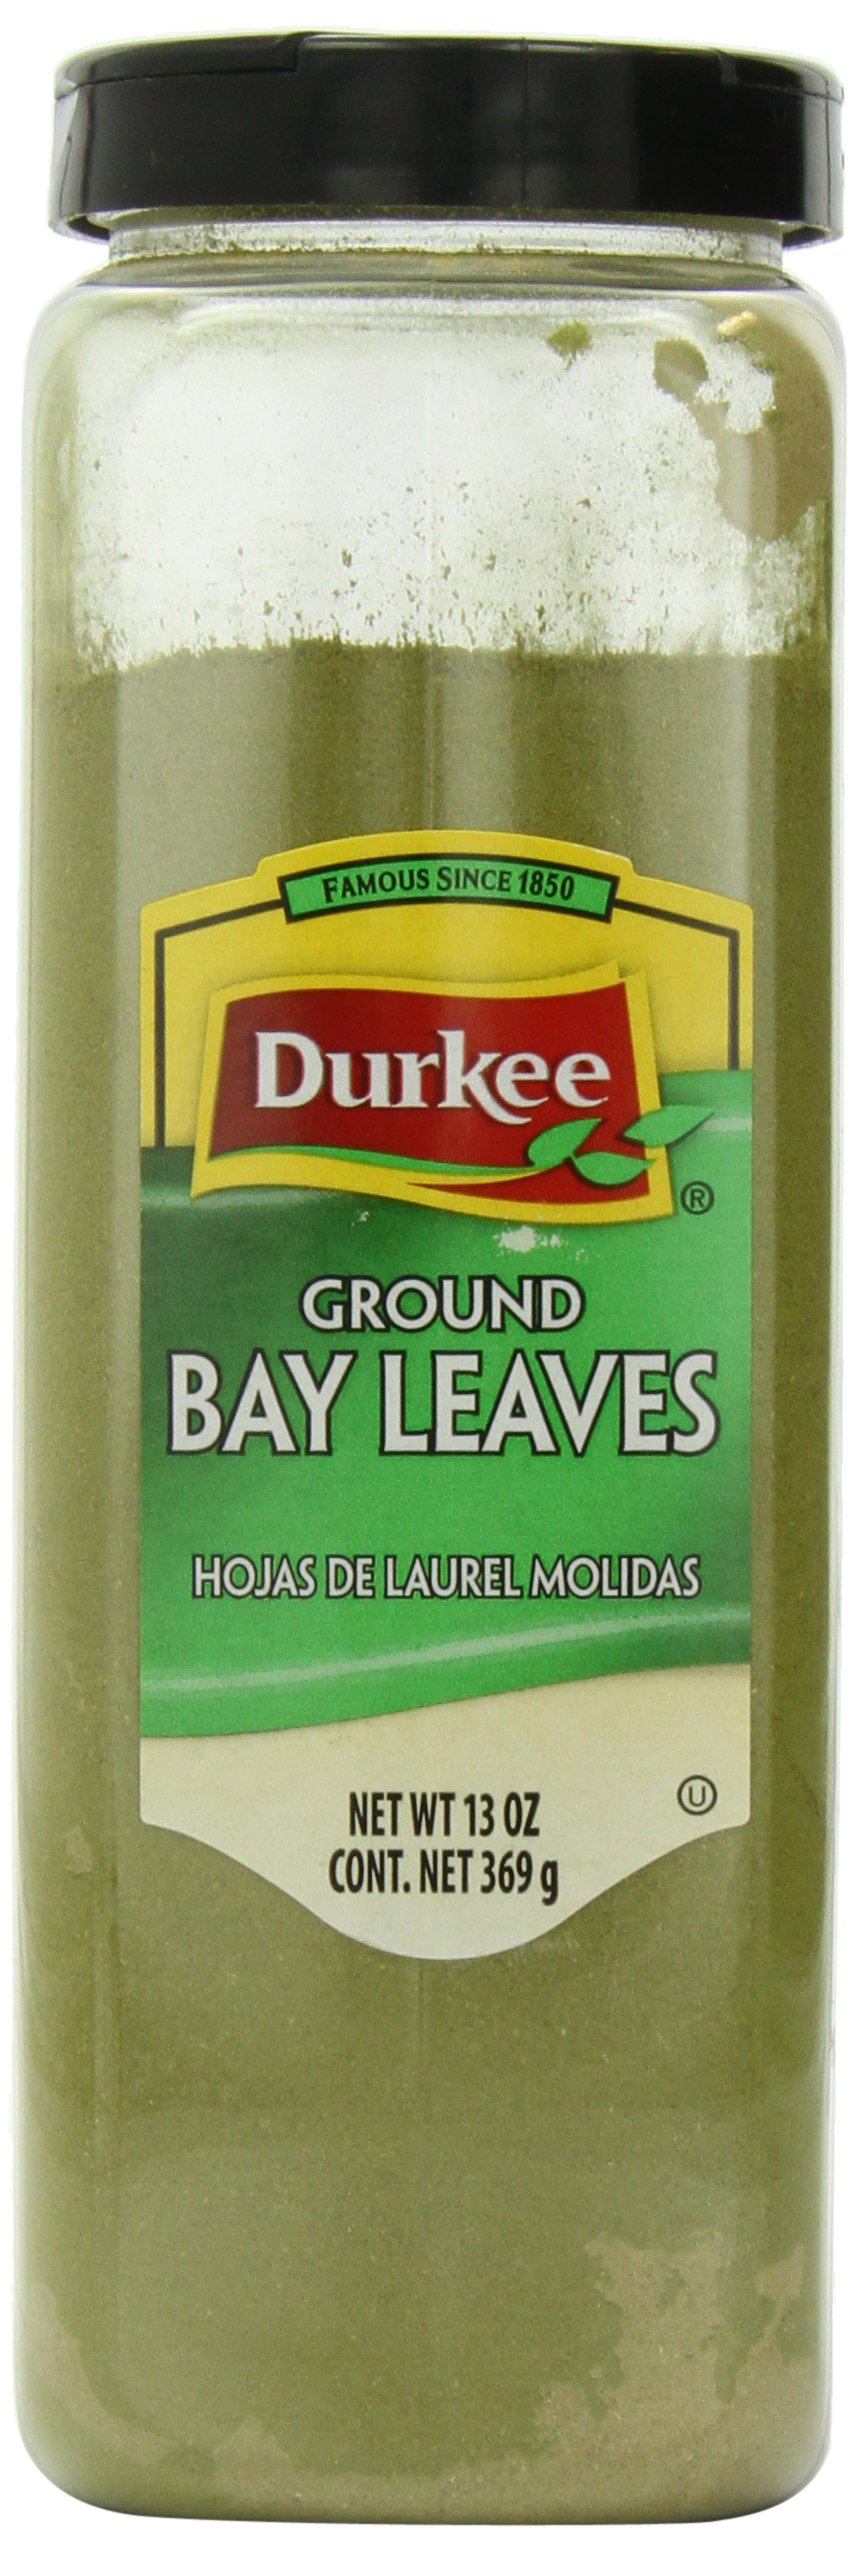 Durkee Bay Leaves, Ground, 13-ounce